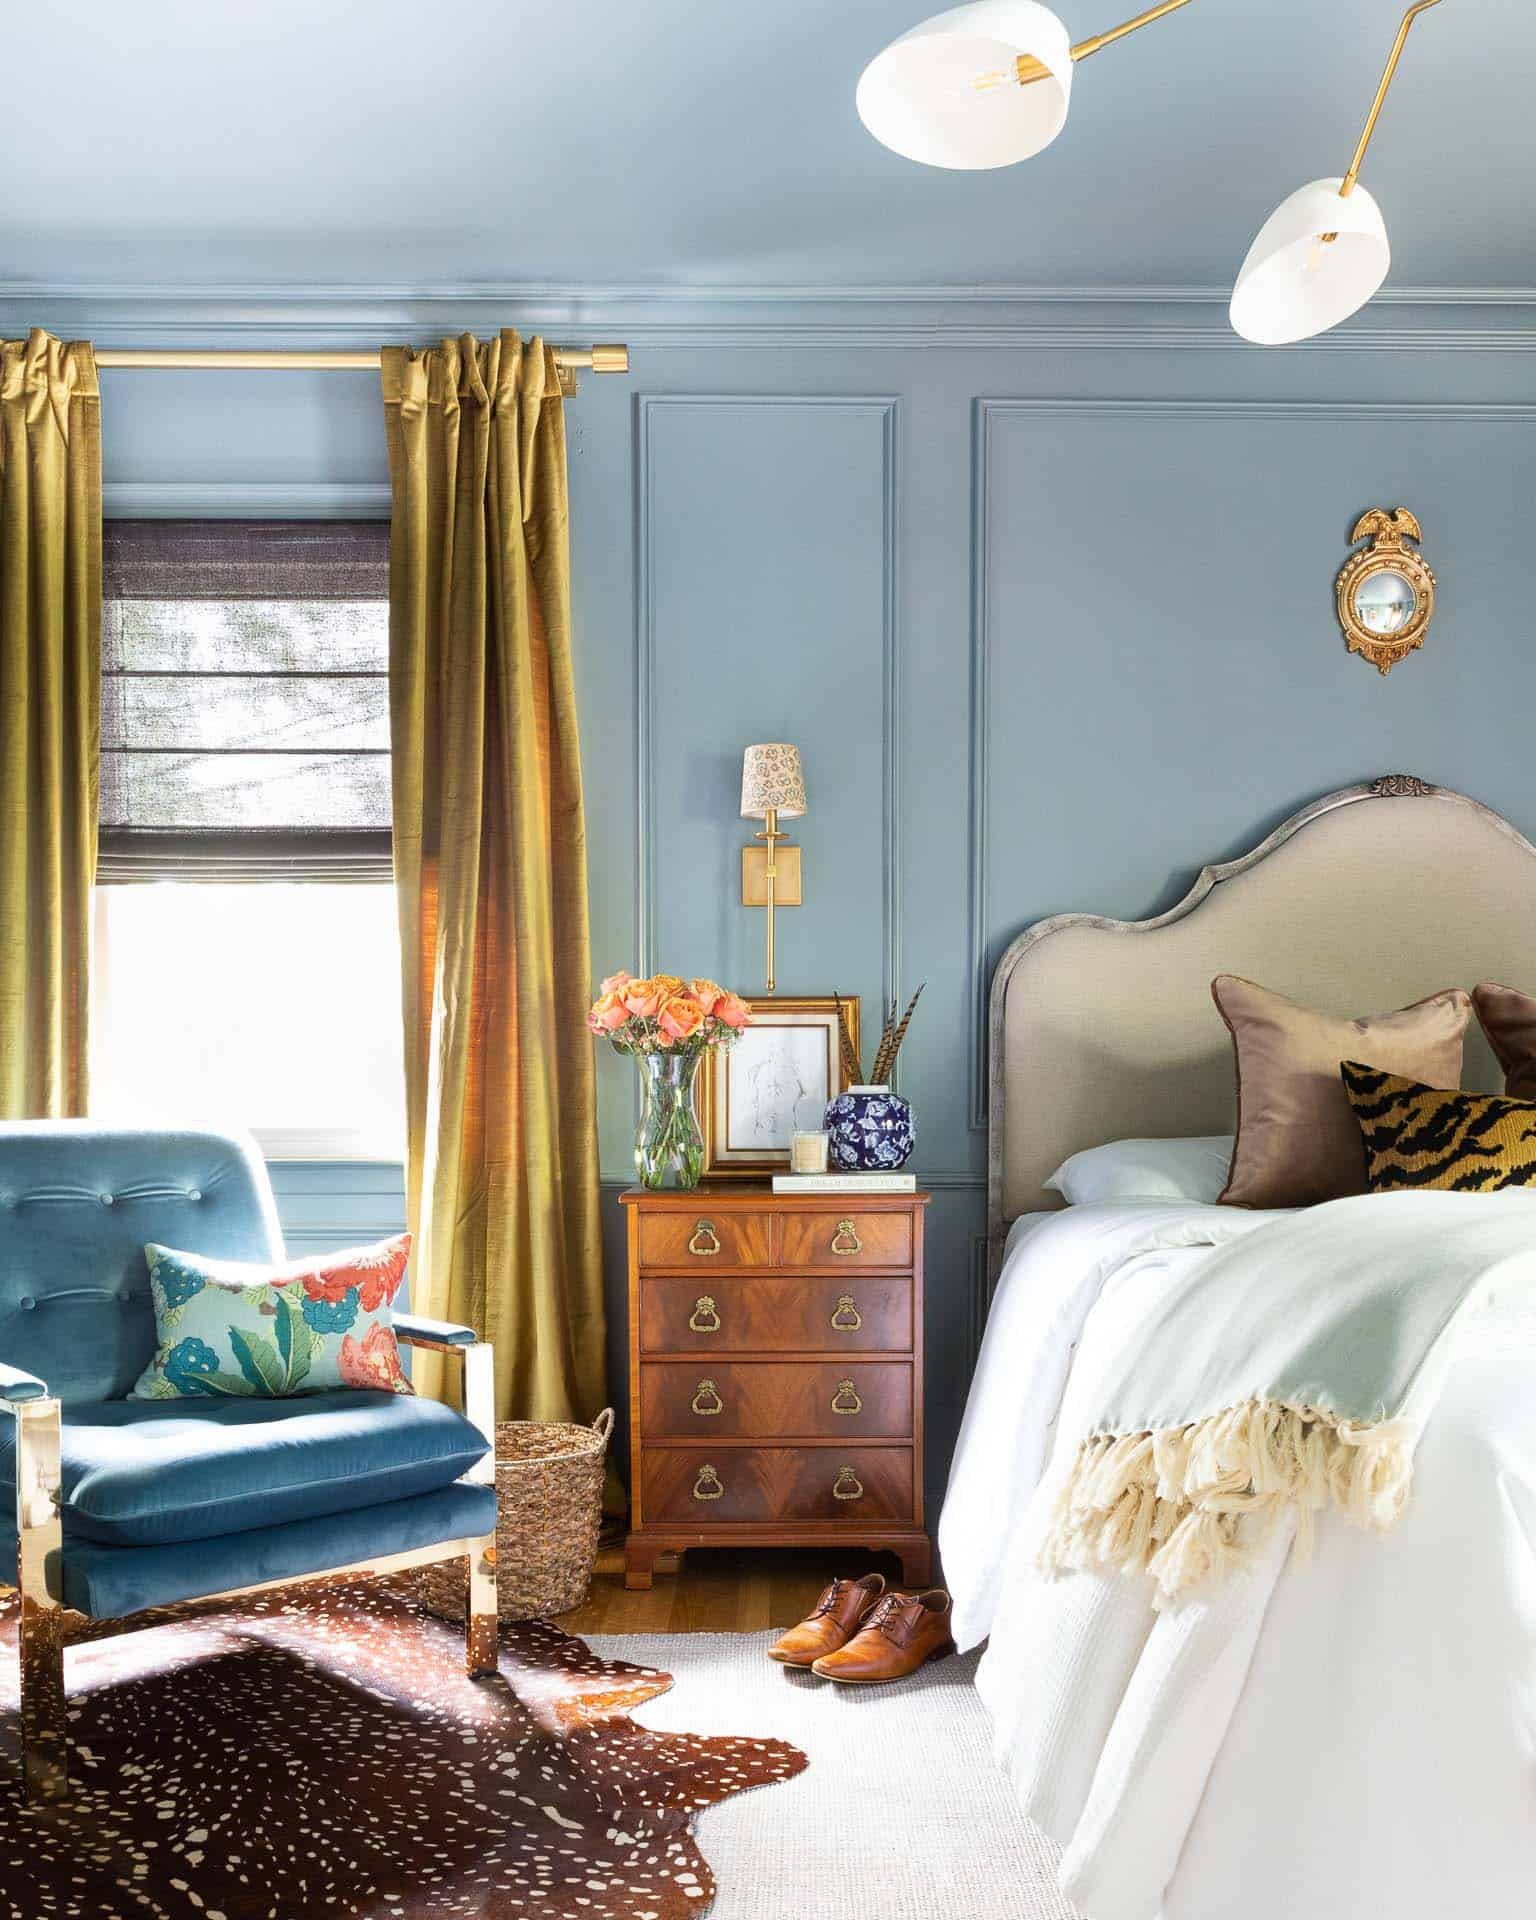 Graham & Brown Color of the Year 2022 paint inspiration